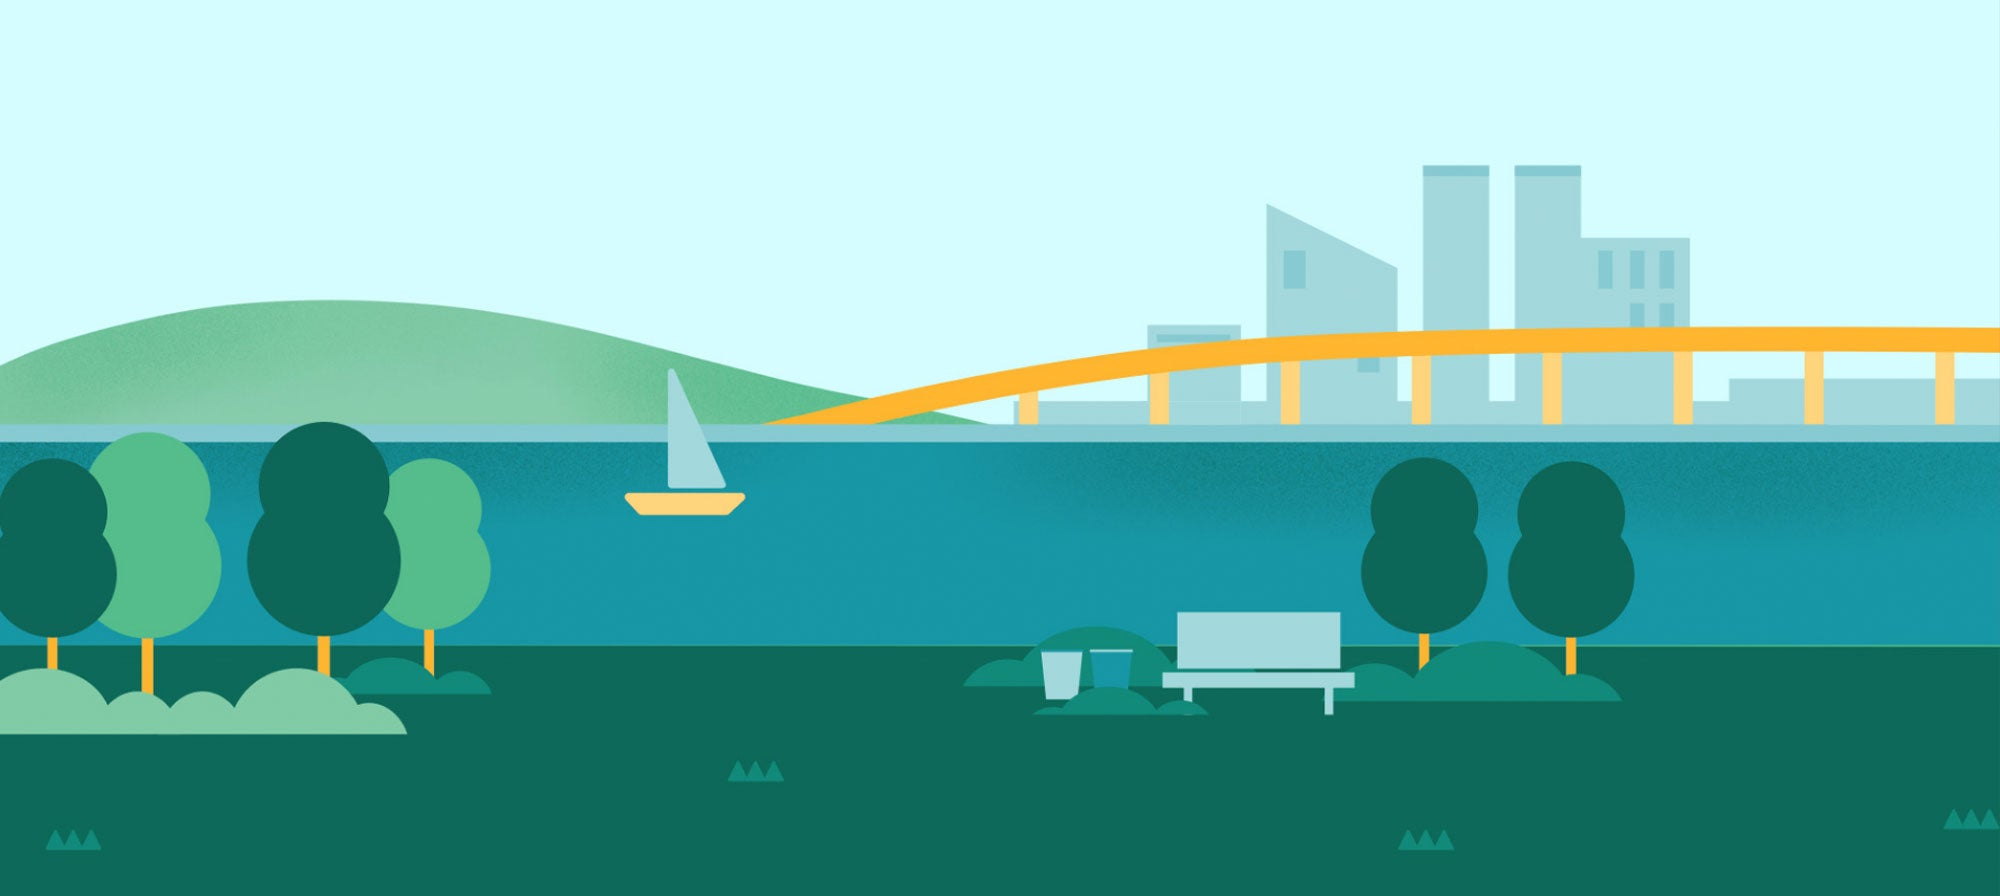 A bench with trees in the foregrwound while a sailboat, bridge and buildings are in the background of this illustration from the Mayor of Bayville game.